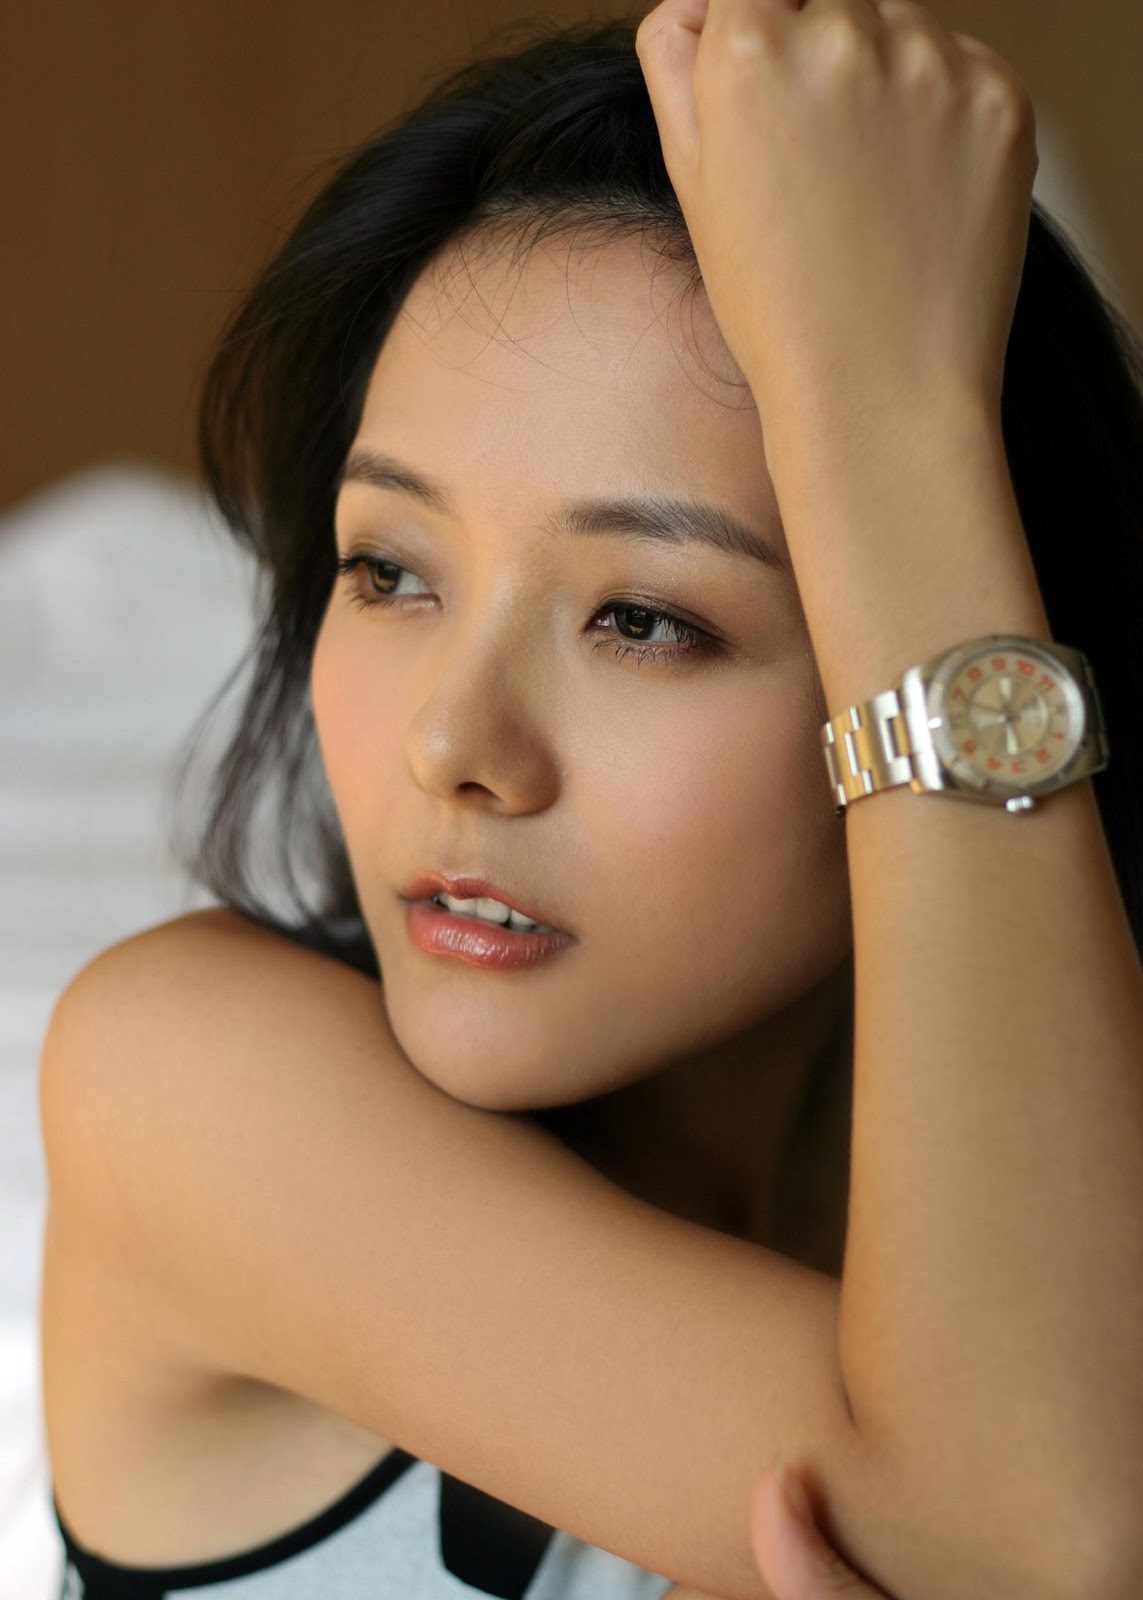 Sexy japanese girls pictures-4716